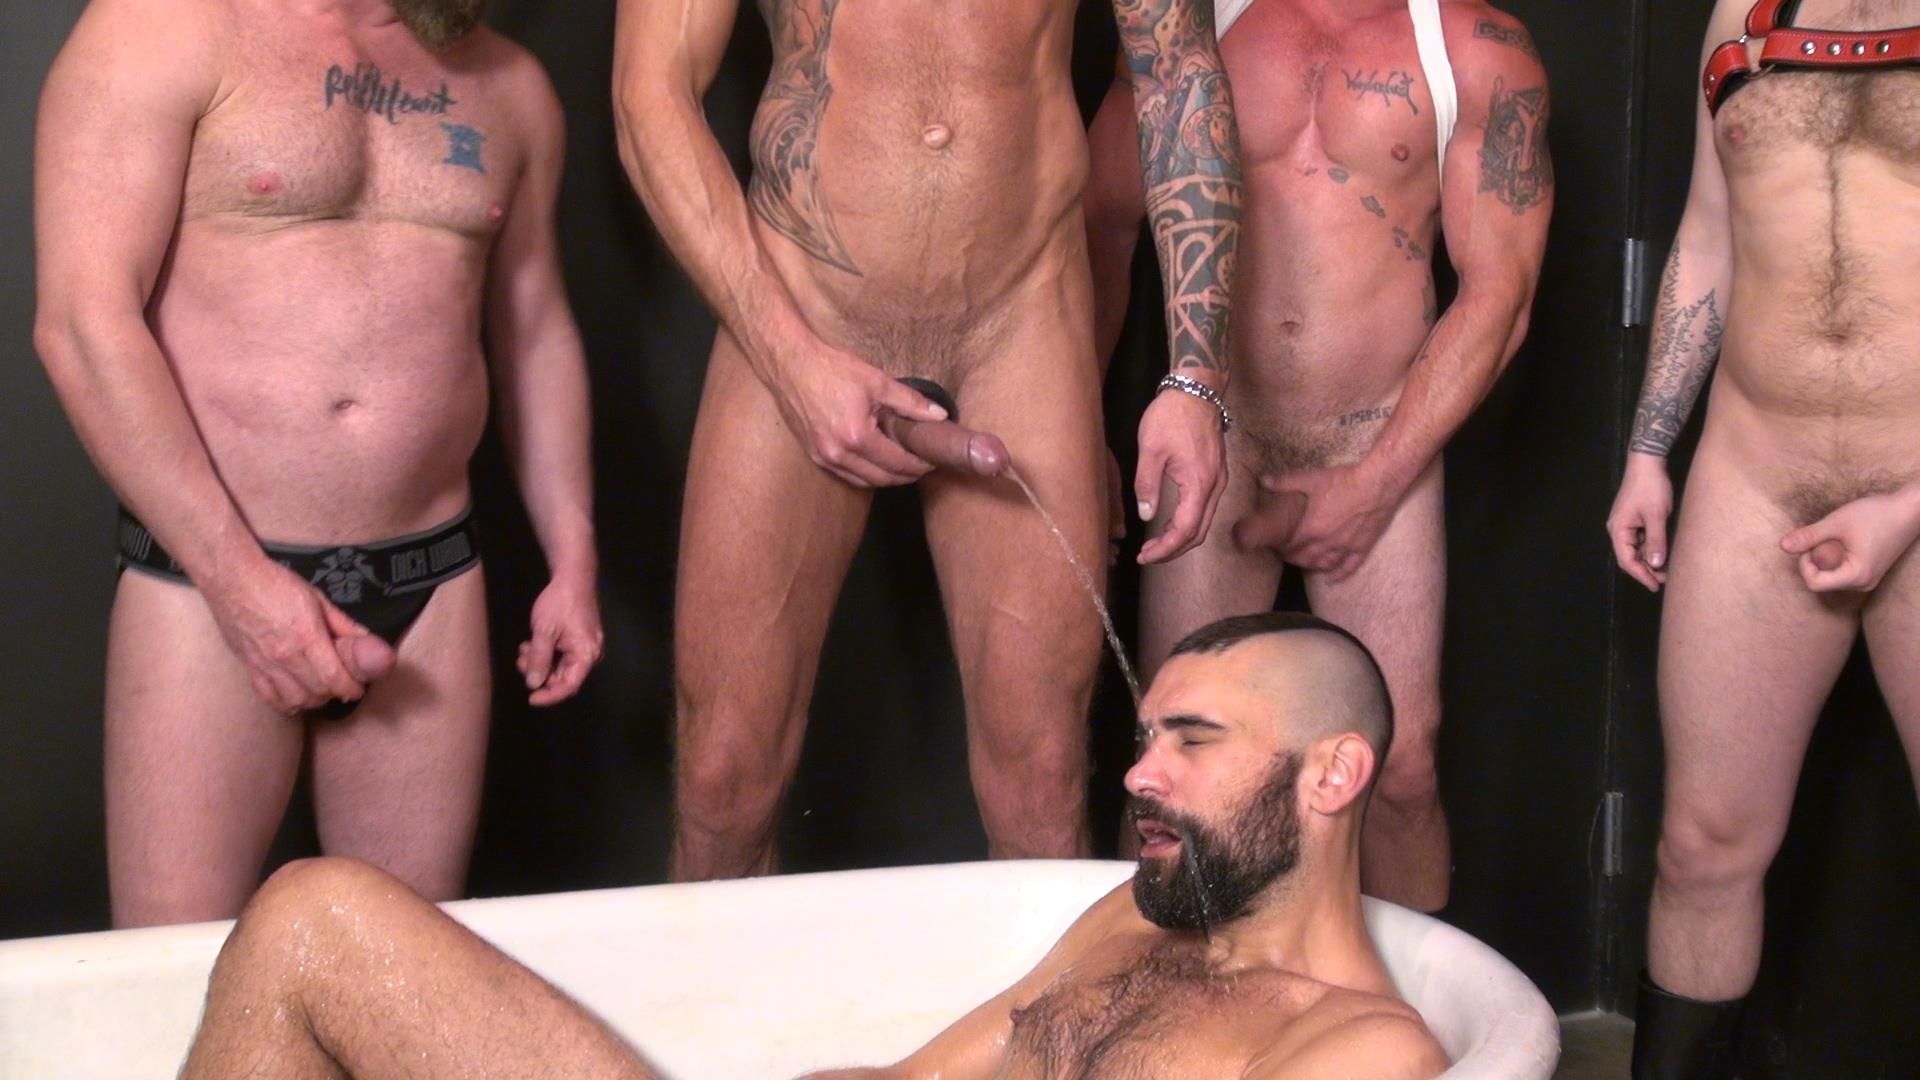 Raw-and-Rough-Piss-Tub-Bareback-Sex-Party-Amateur-Gay-Porn-02 Getting Bareback Fucked In The Piss Tub At The Gay Bar